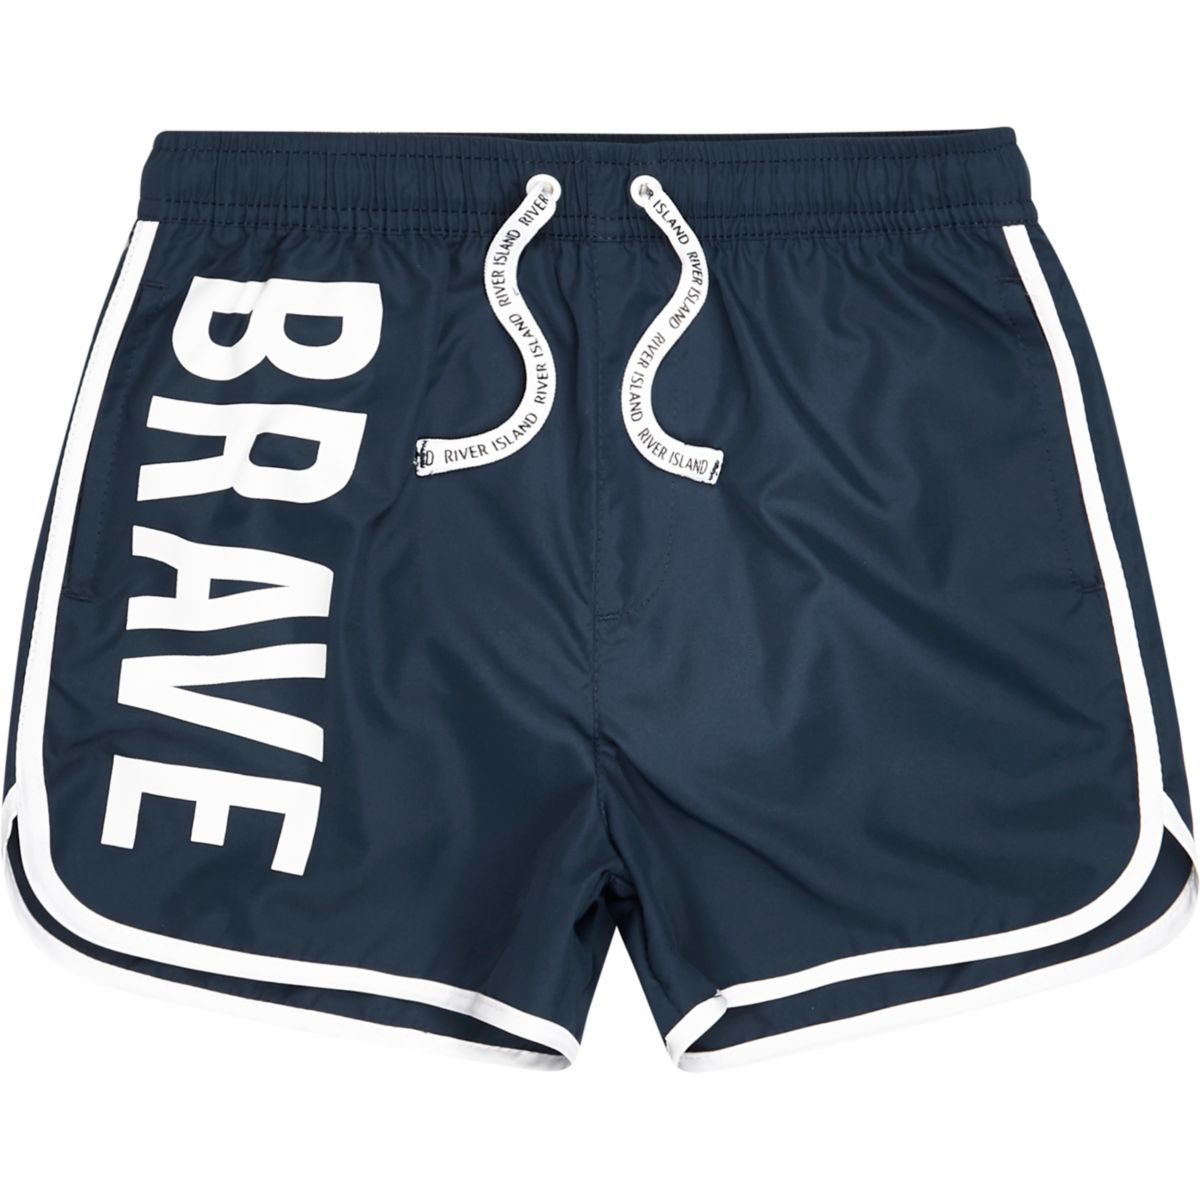 Boys blue RI 'brave' print runner swim shorts